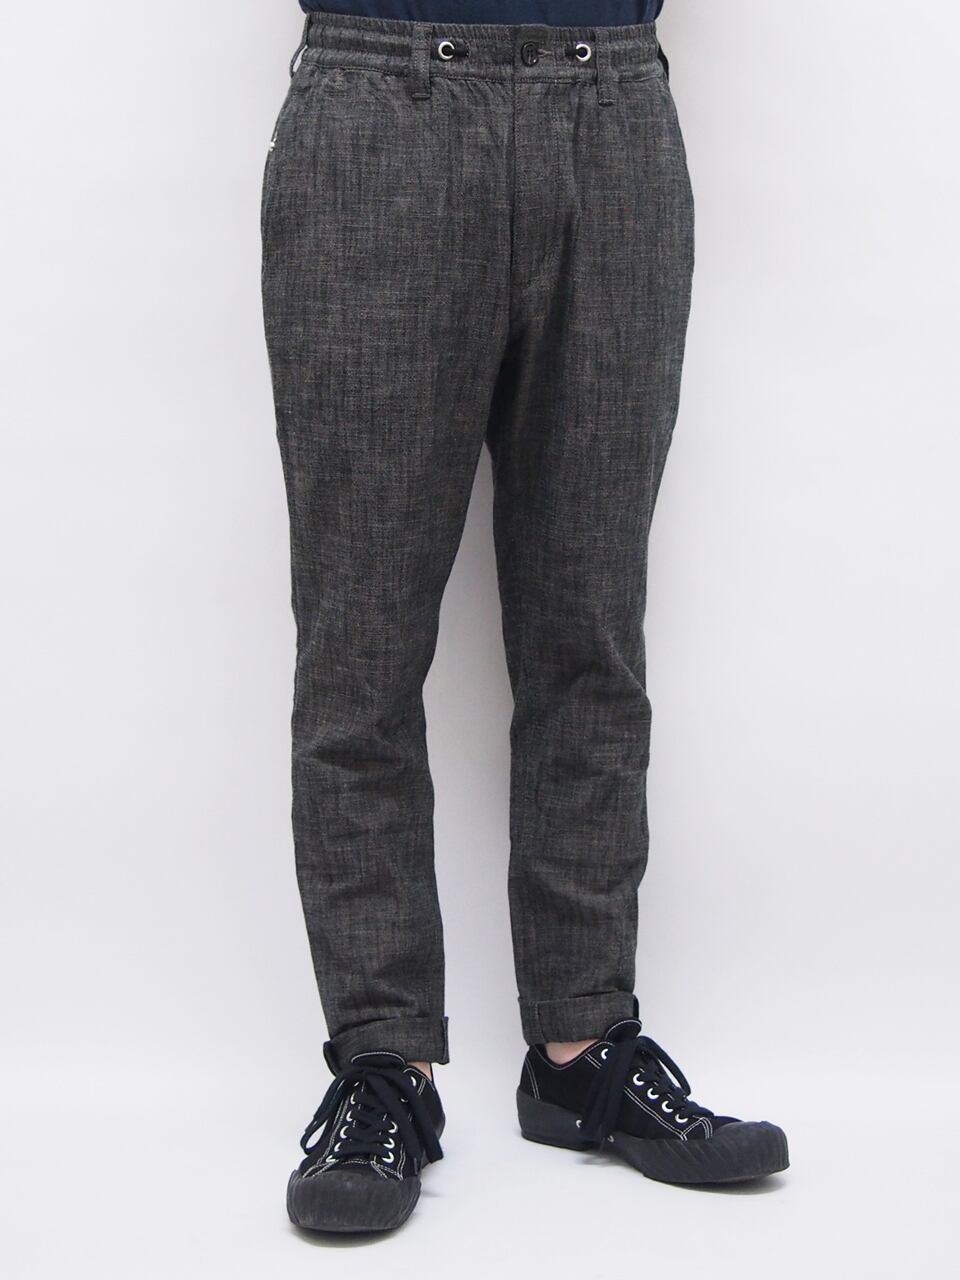 EGO TRIPPING (エゴトリッピング) MARBLING EASY TROUSERS / GRAY 623401-03